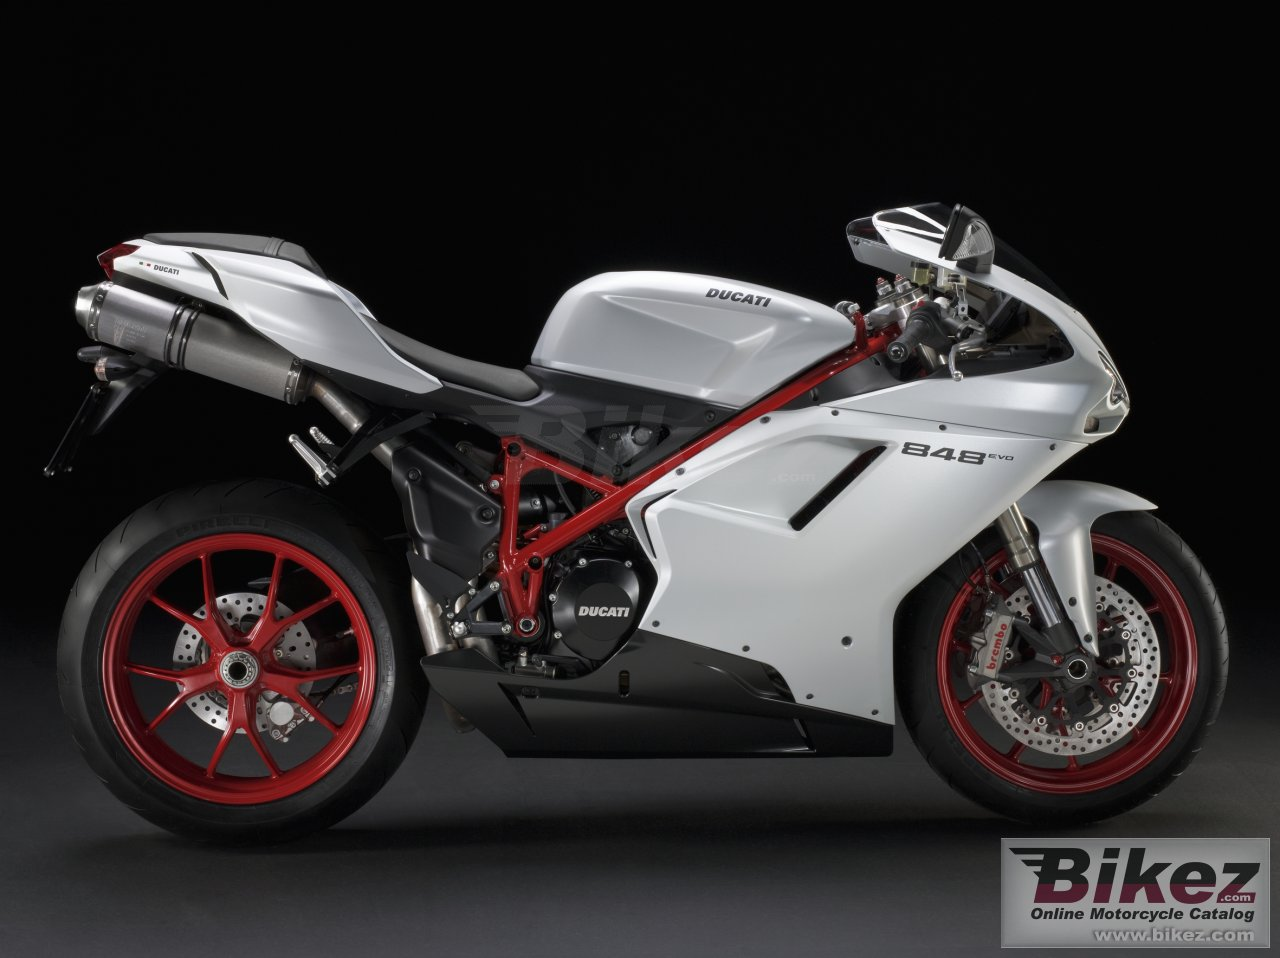 Big Ducati superbike 848 evo picture and wallpaper from Bikez.com